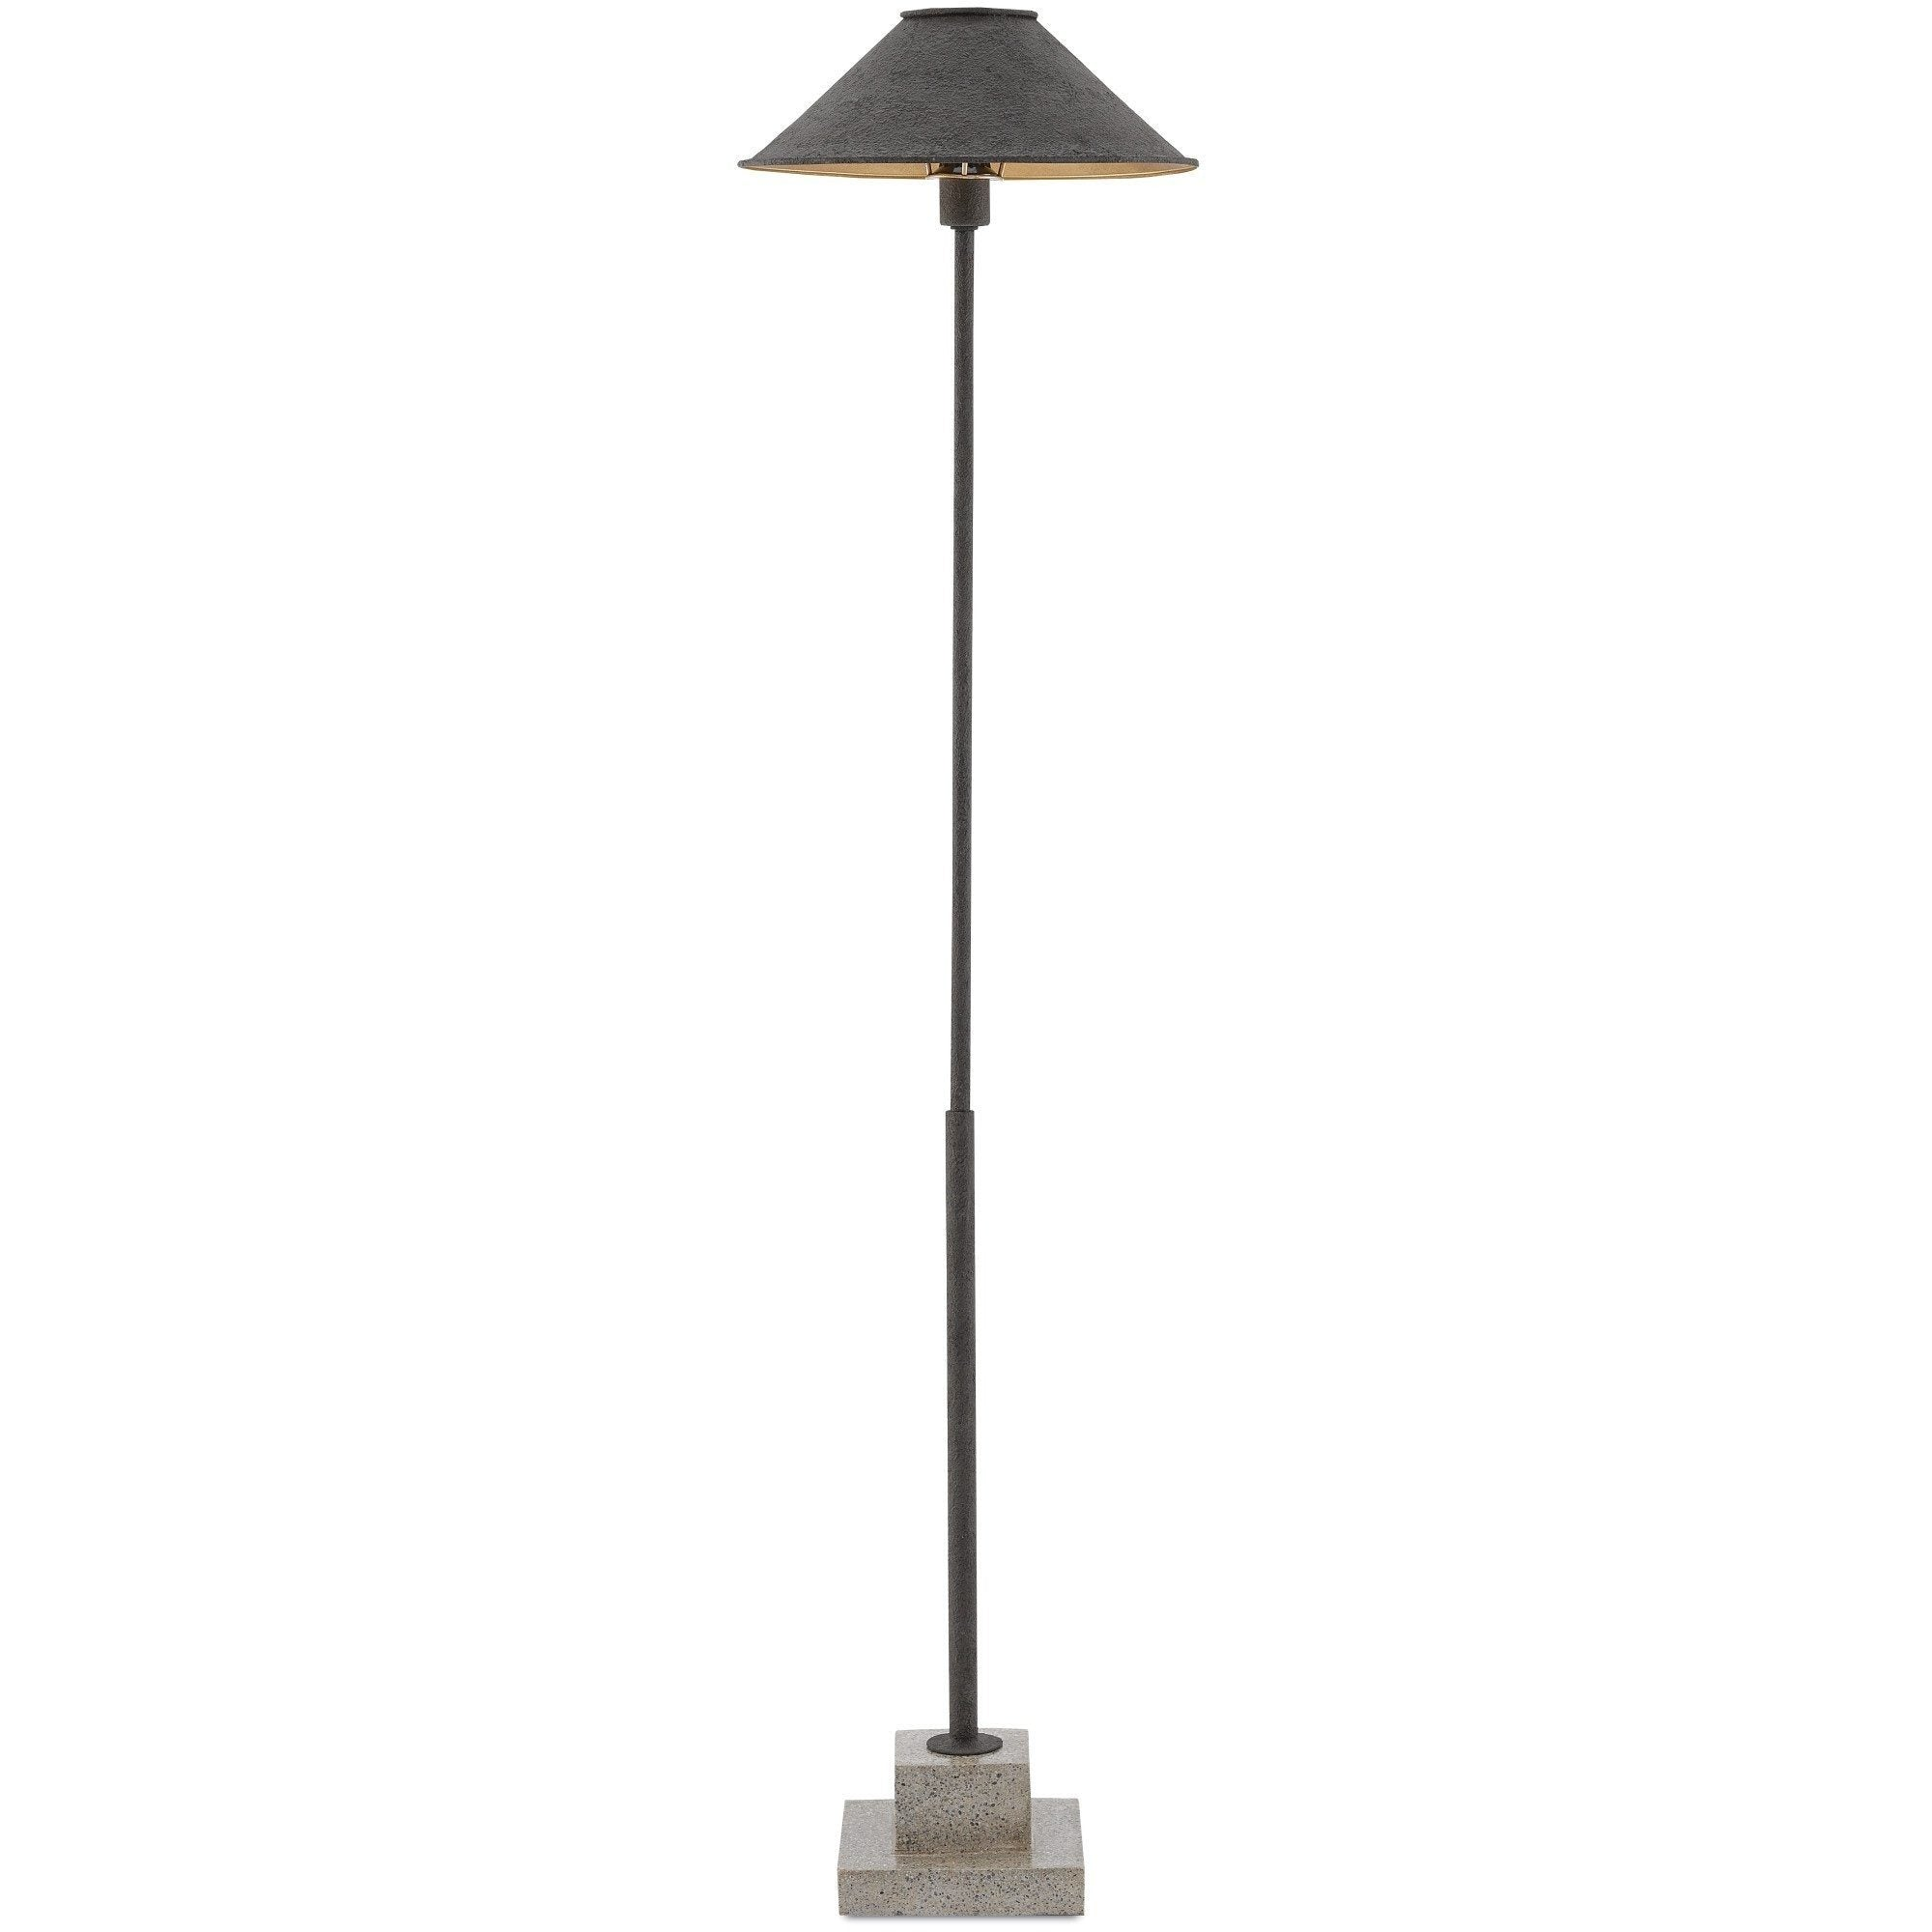 Currey and Company Fudo Floor Lamp 8000-0016 - LOVECUP